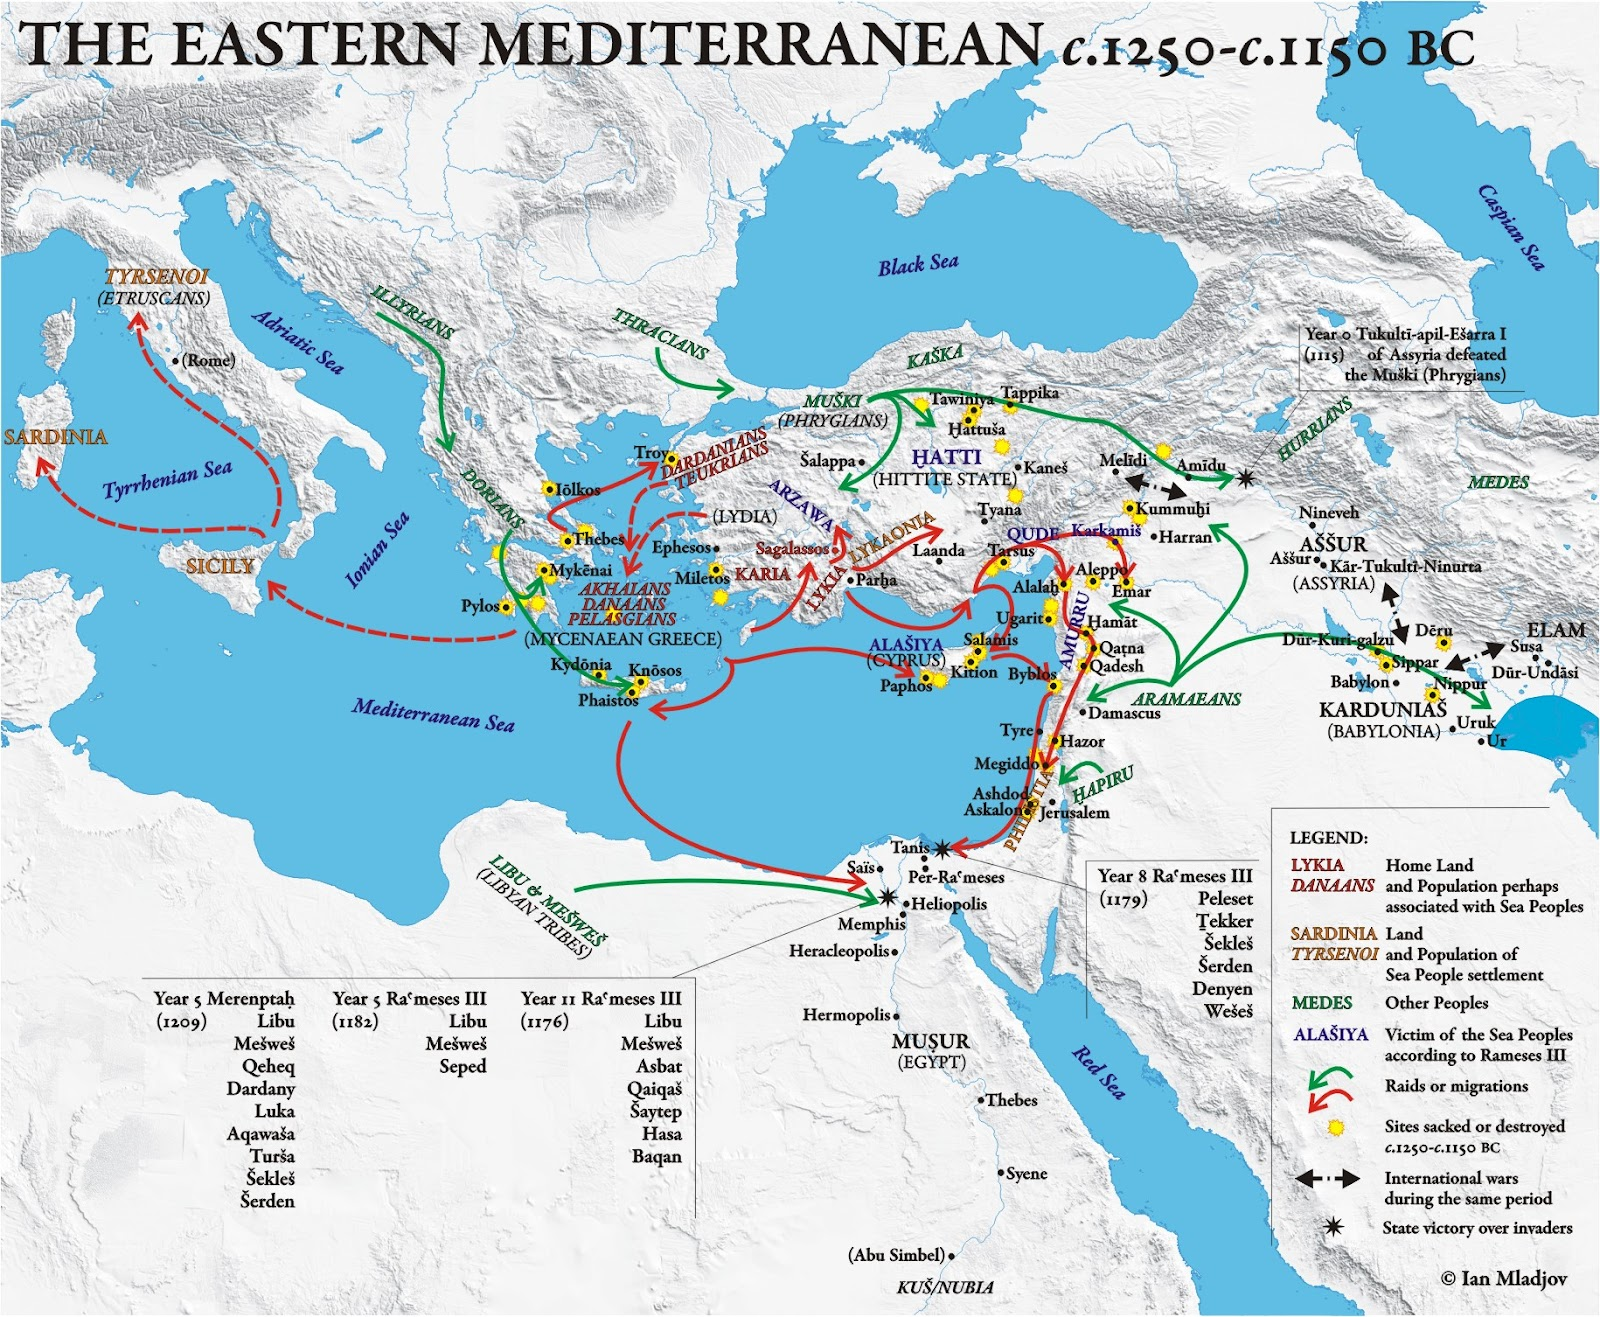 an analysis of the history of the conflict cyprus an island in the eastern mediterranean Cyprus, officially the republic of cyprus, is an island country in the eastern mediterranean and the third largest and third most populous island in the mediterranean.